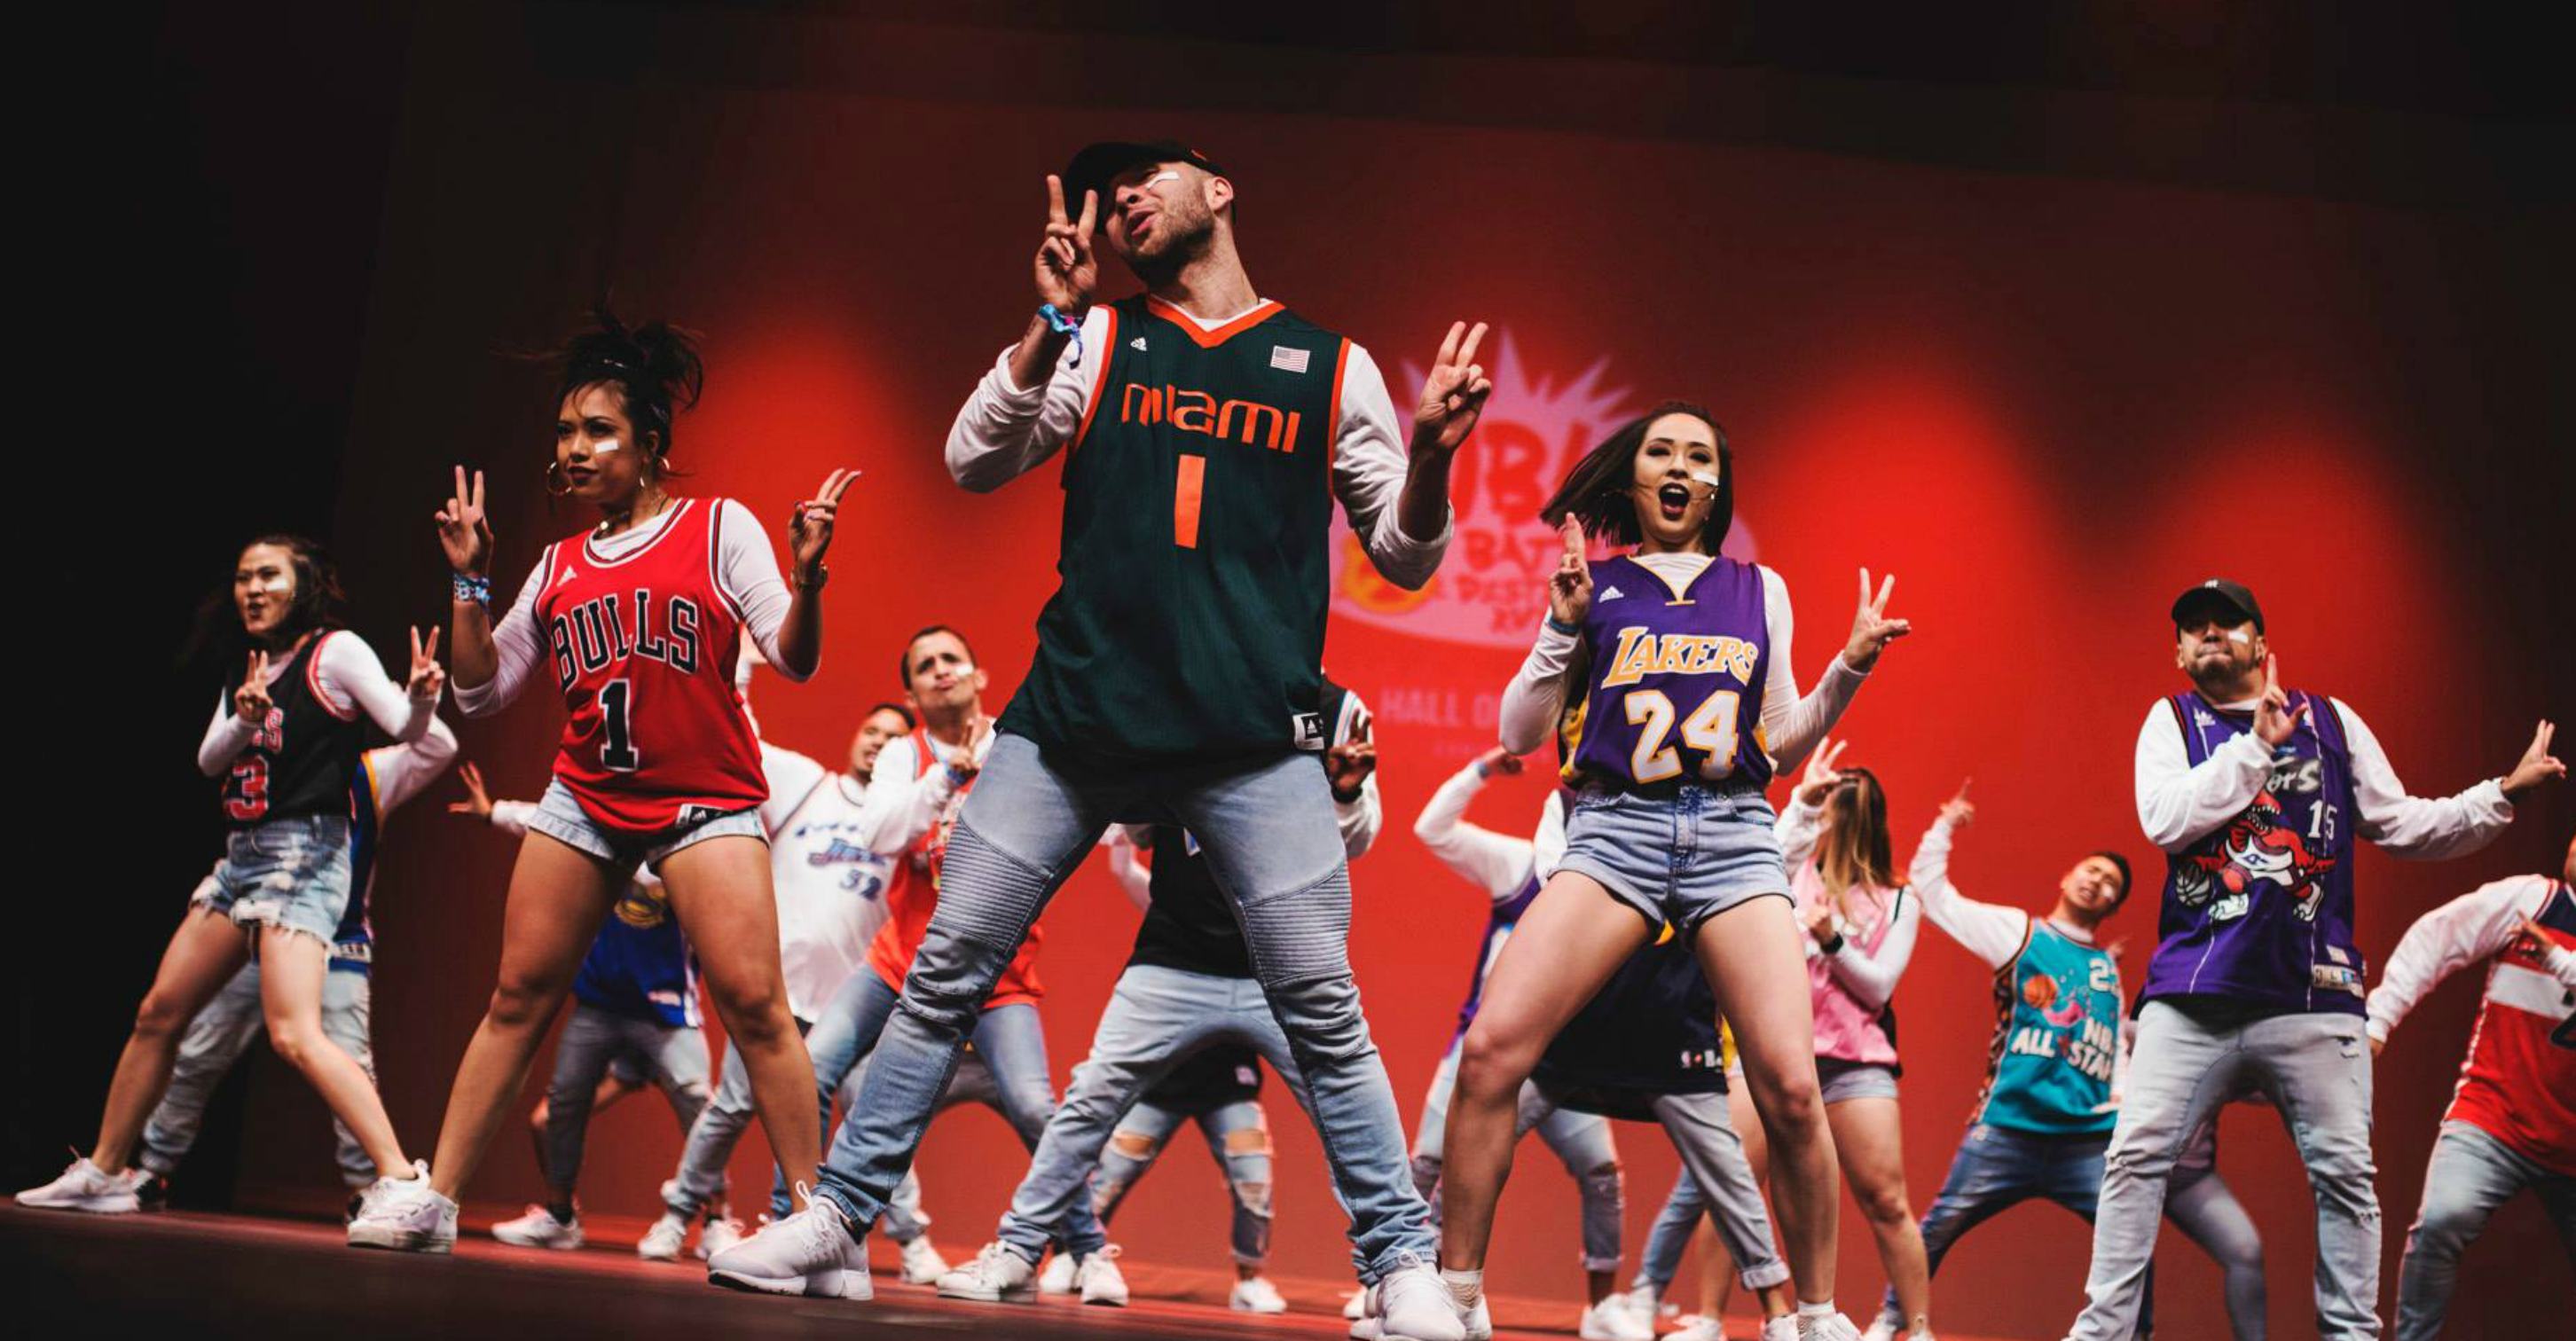 How To Dance Hip Hop For Beginners Steezy Blog